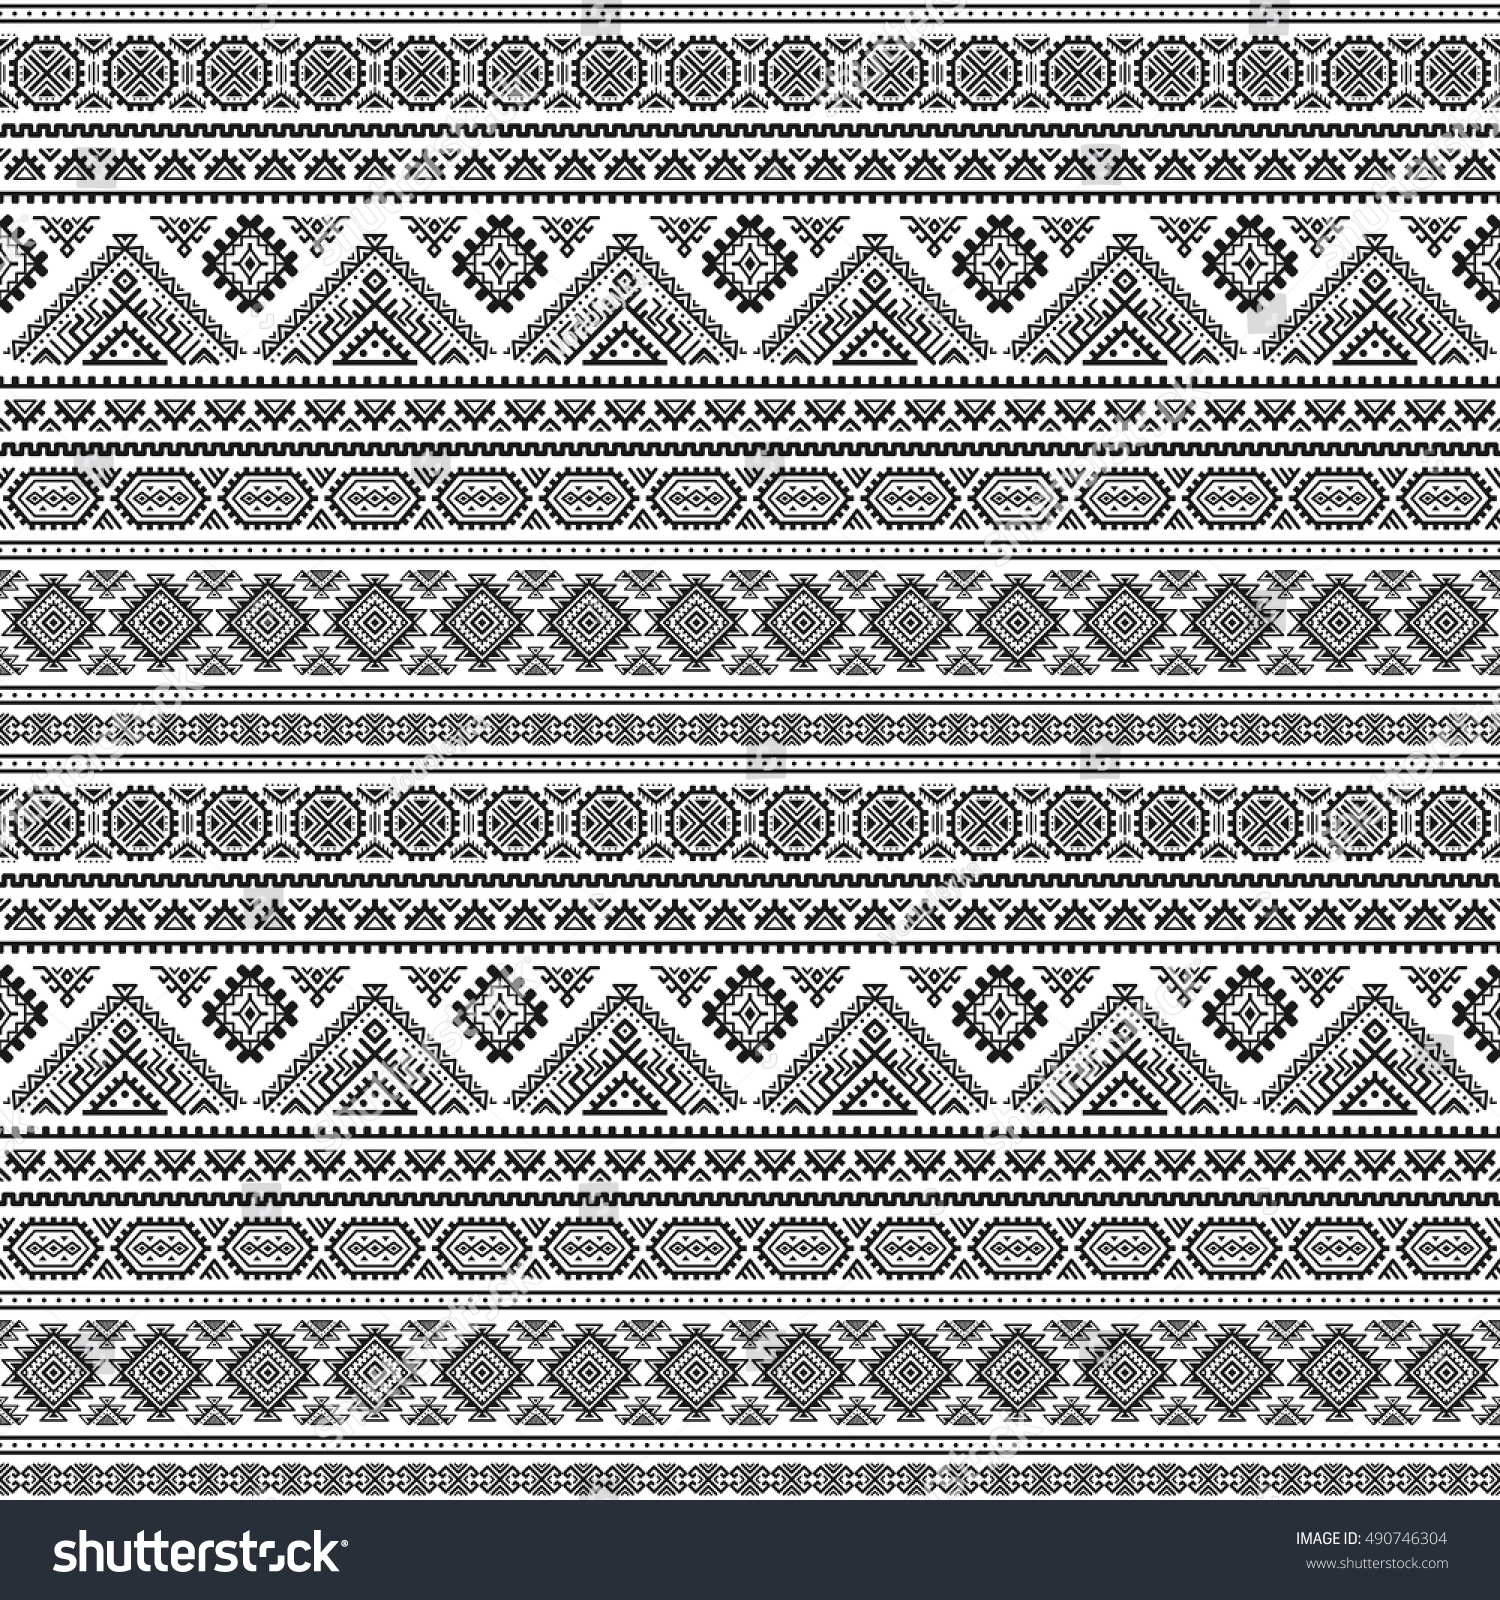 Background geometric mexican patterns seamless vector zigzag maya - Ethnic Seamless Monochrome Pattern Aztec Geometric Background Tribal Print Navajo Fabric Modern